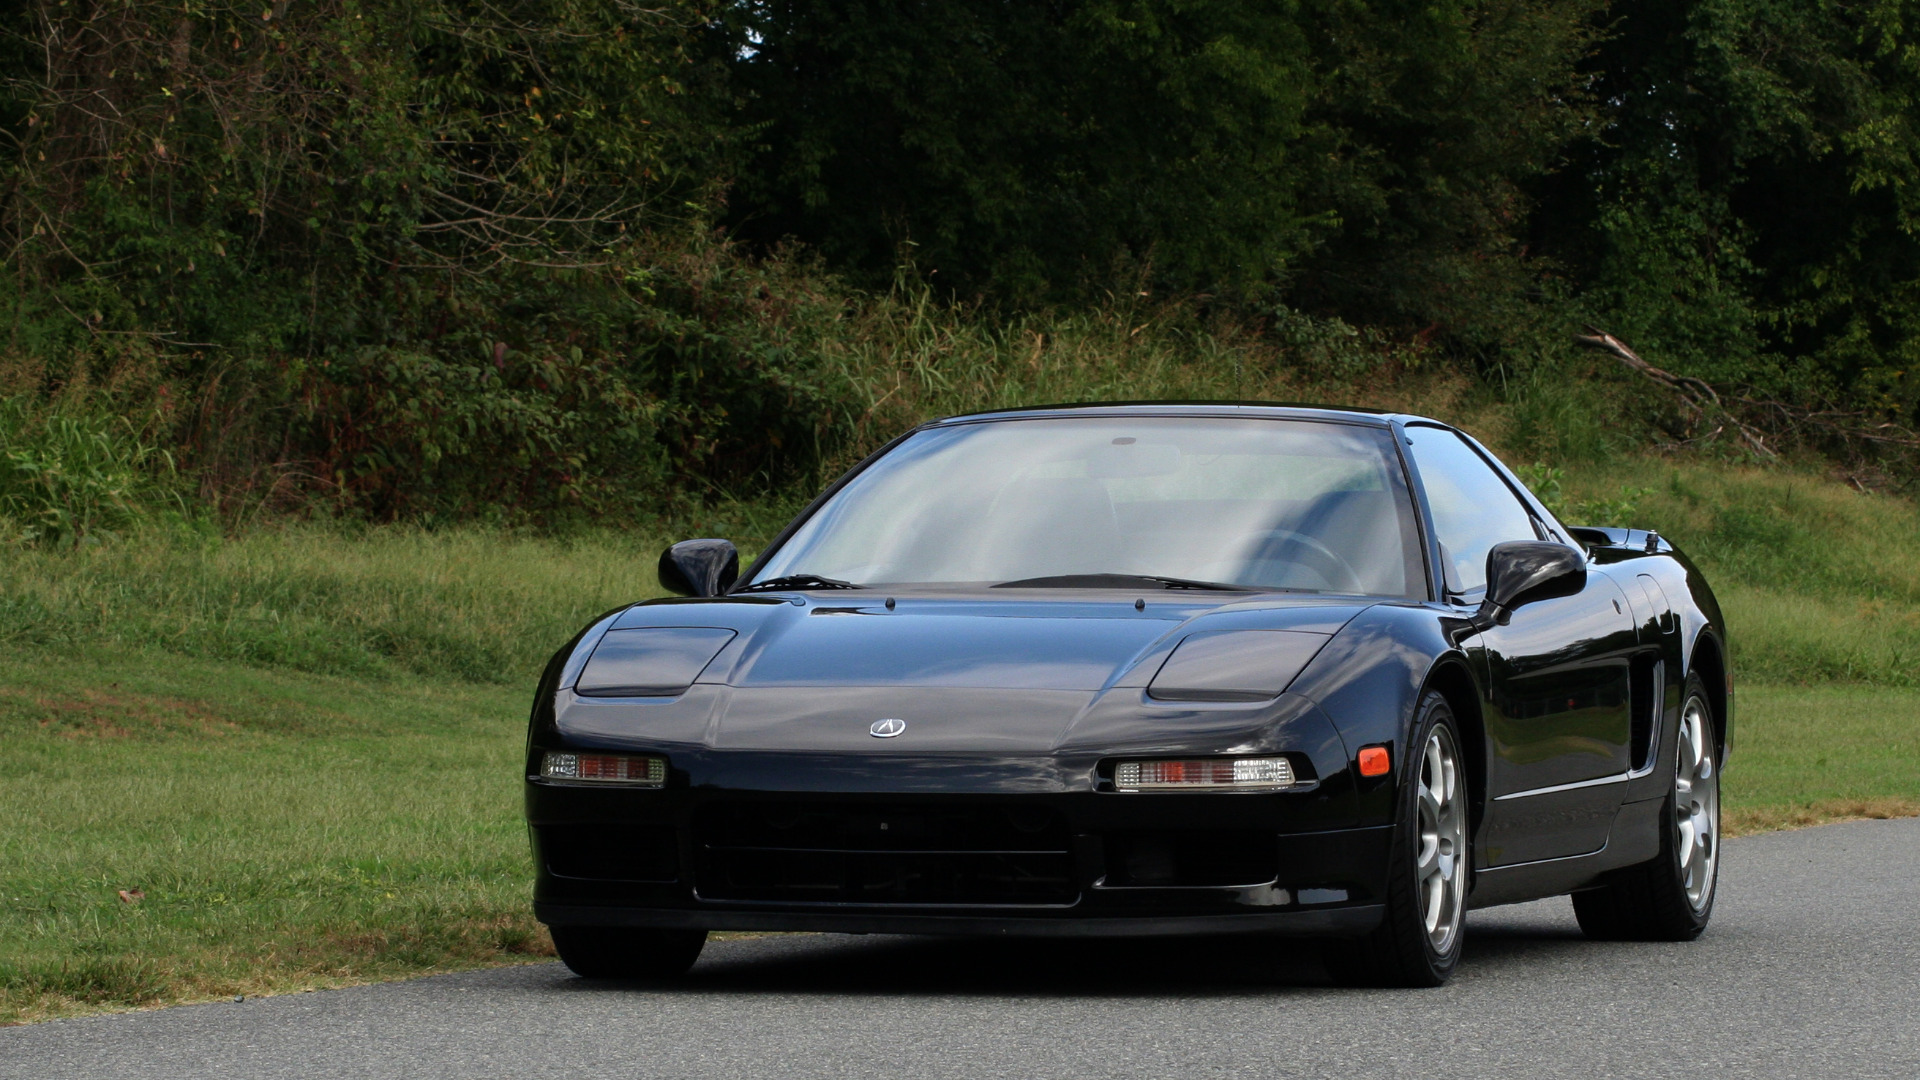 Used 1995 Acura NSX OPEN TOP / 5-SPD MAN / LOW MILES / SUPER CLEAN for sale Sold at Formula Imports in Charlotte NC 28227 73